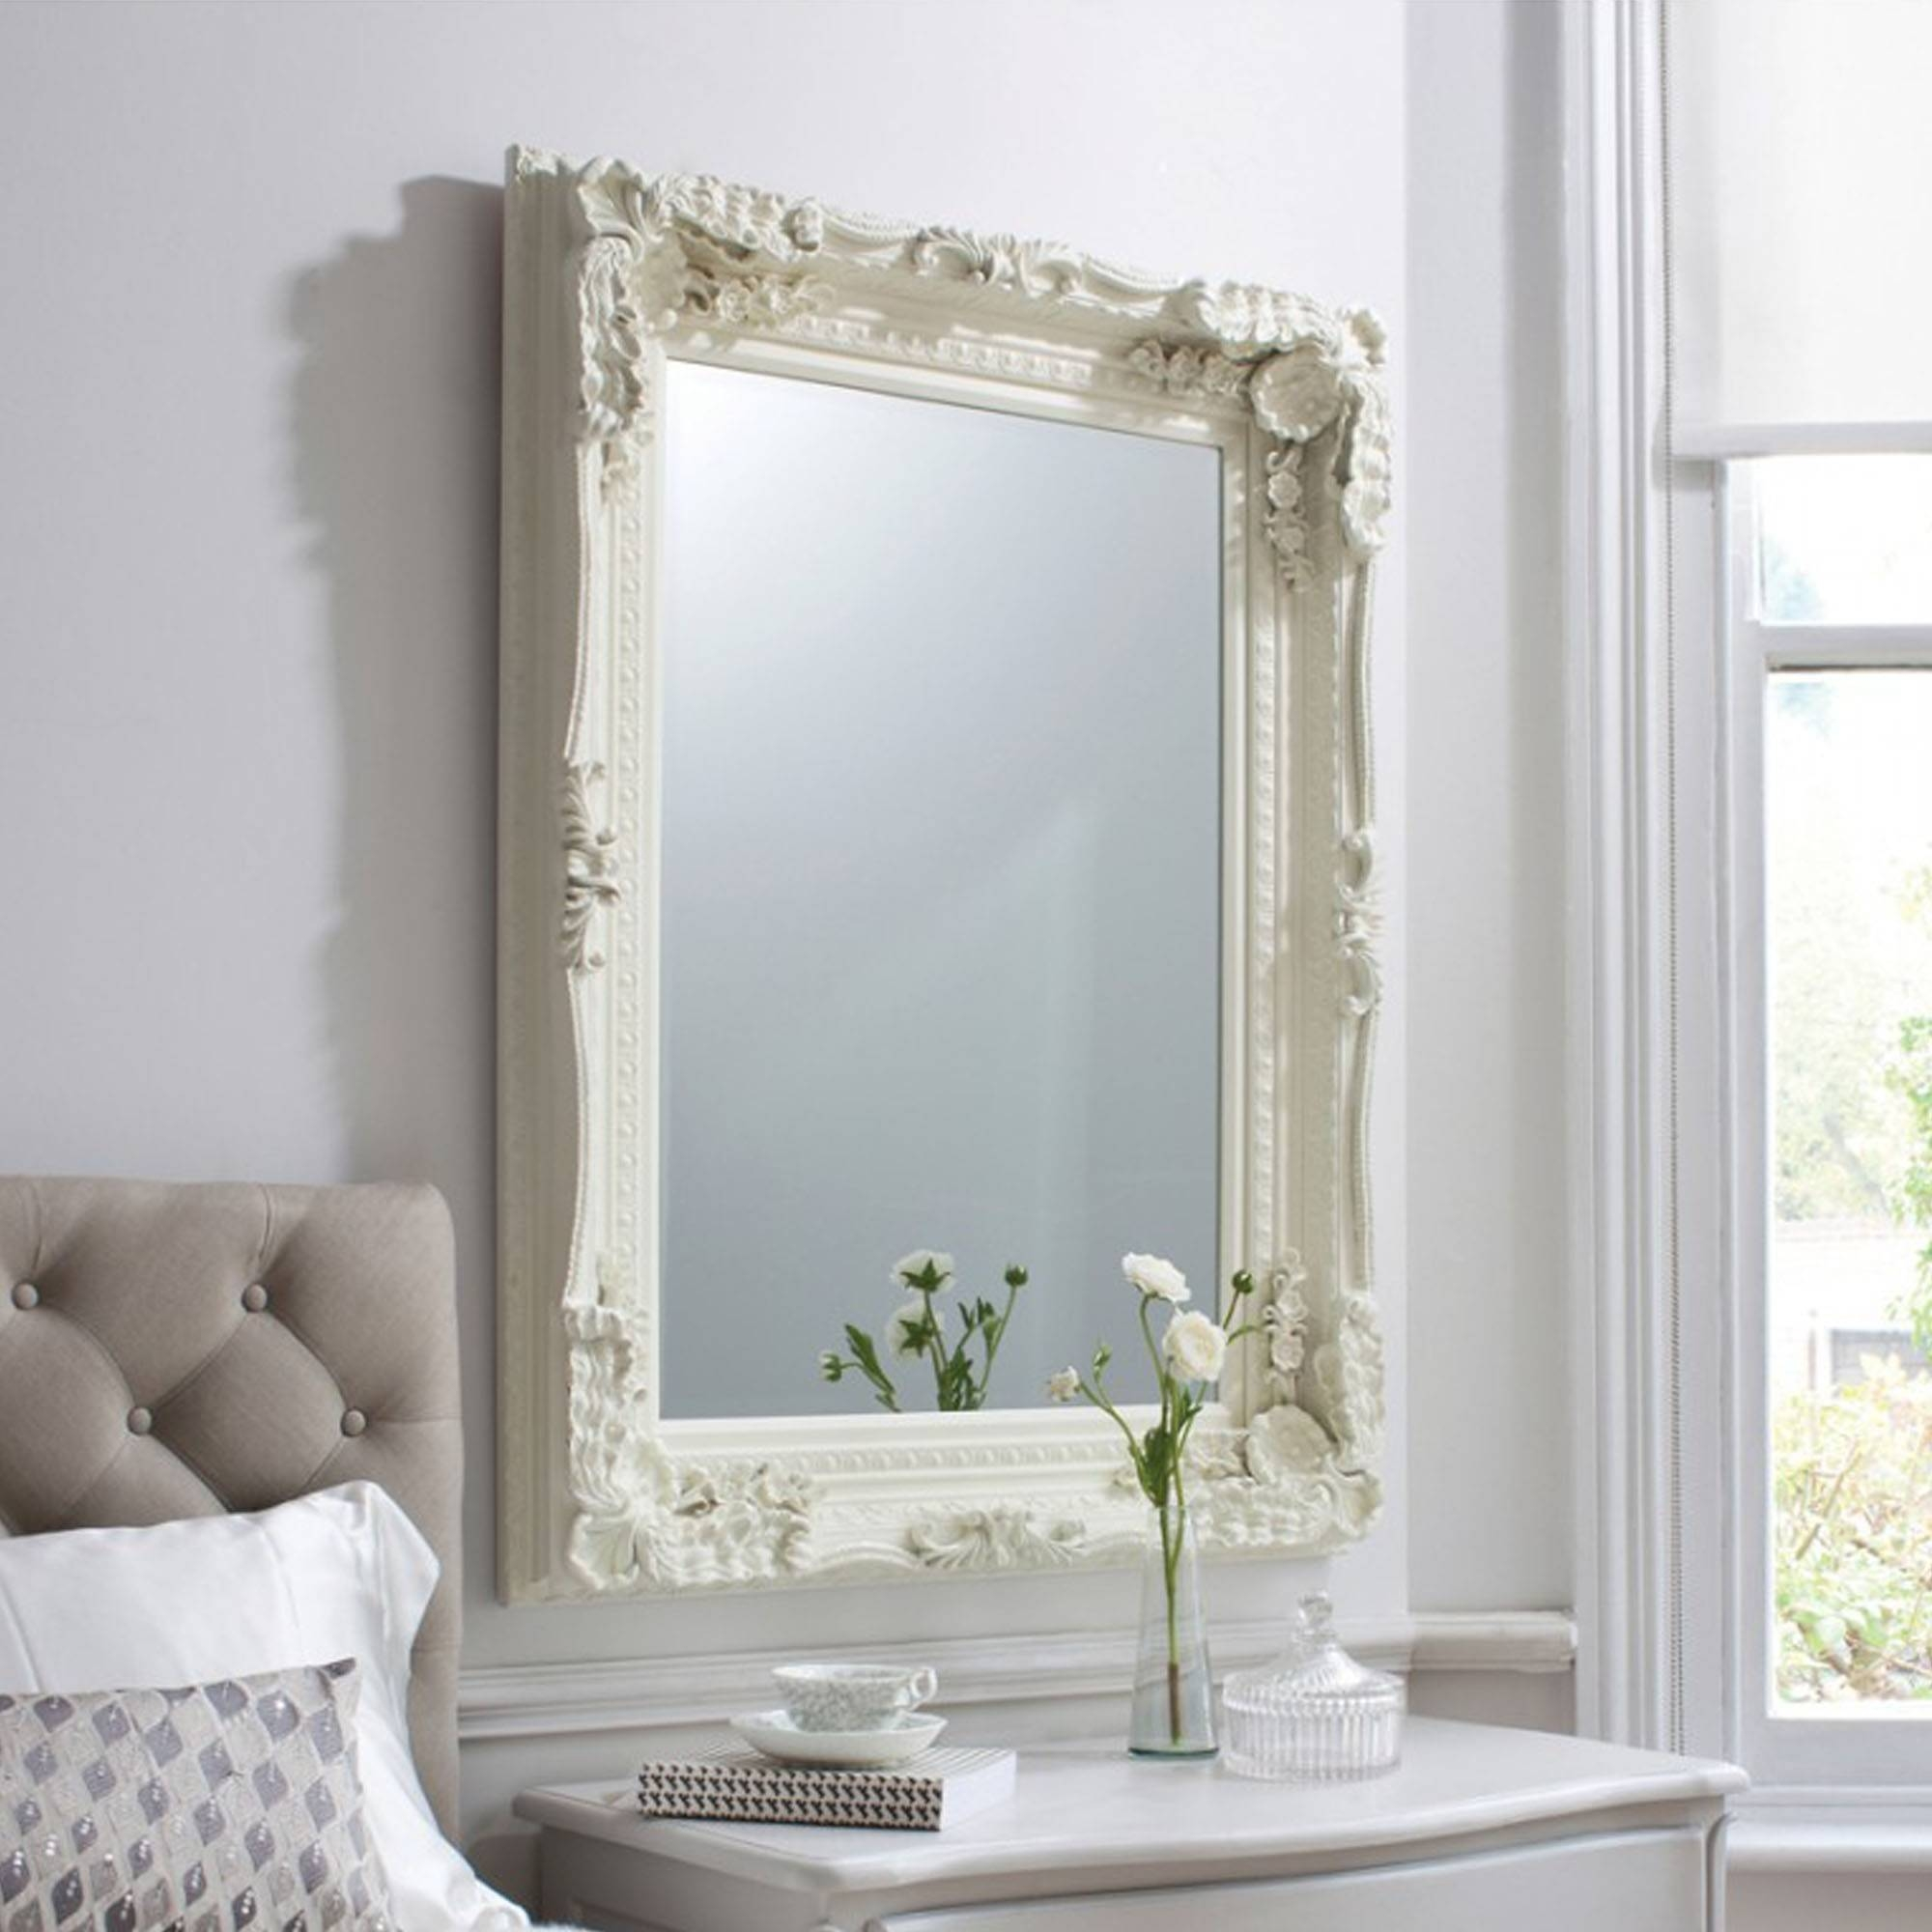 Carved Louis Cream Antique French Style Wall Mirror | Homesdirect365 With French Style Wall Mirrors (View 2 of 15)